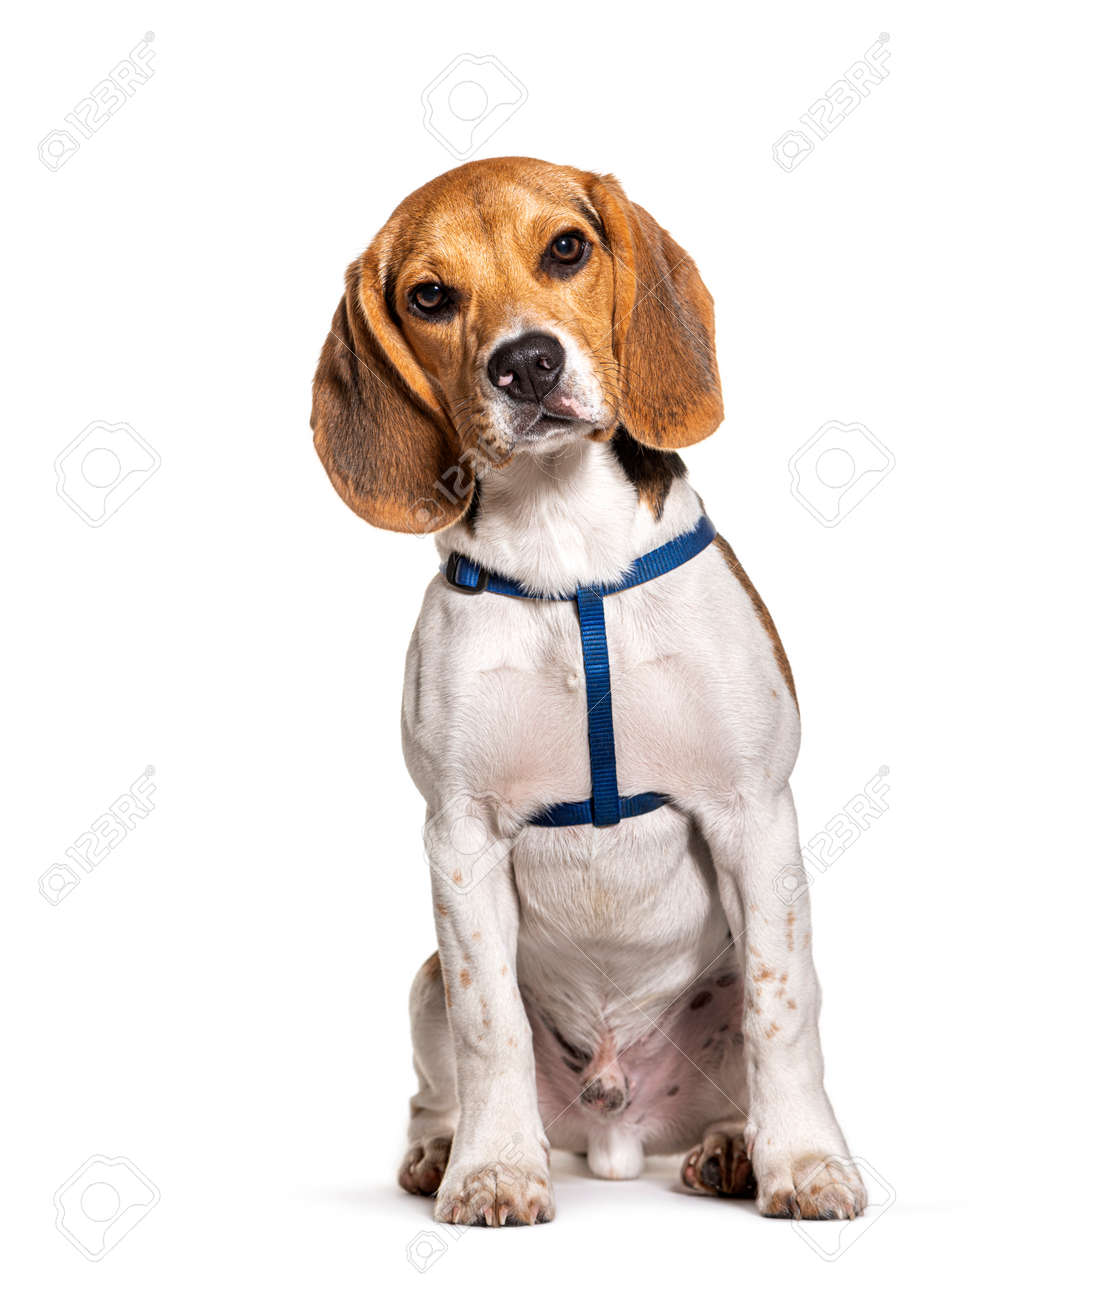 Beagle wearing an harness isolated on white - 171048729